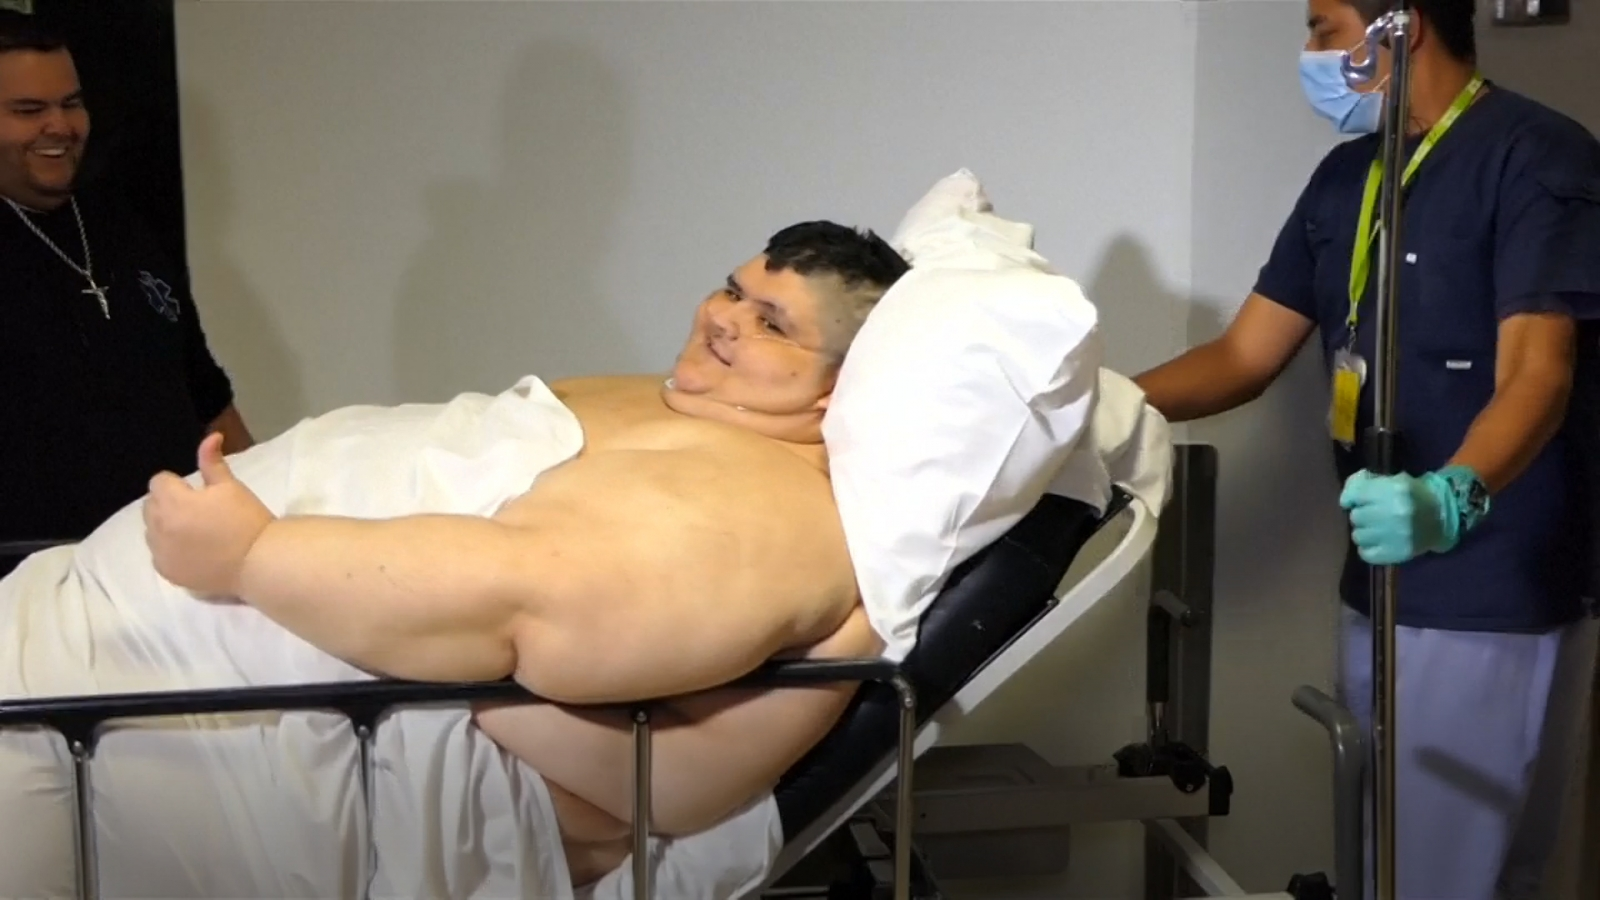 'Worlds fattest man' has surgery to halve his weight